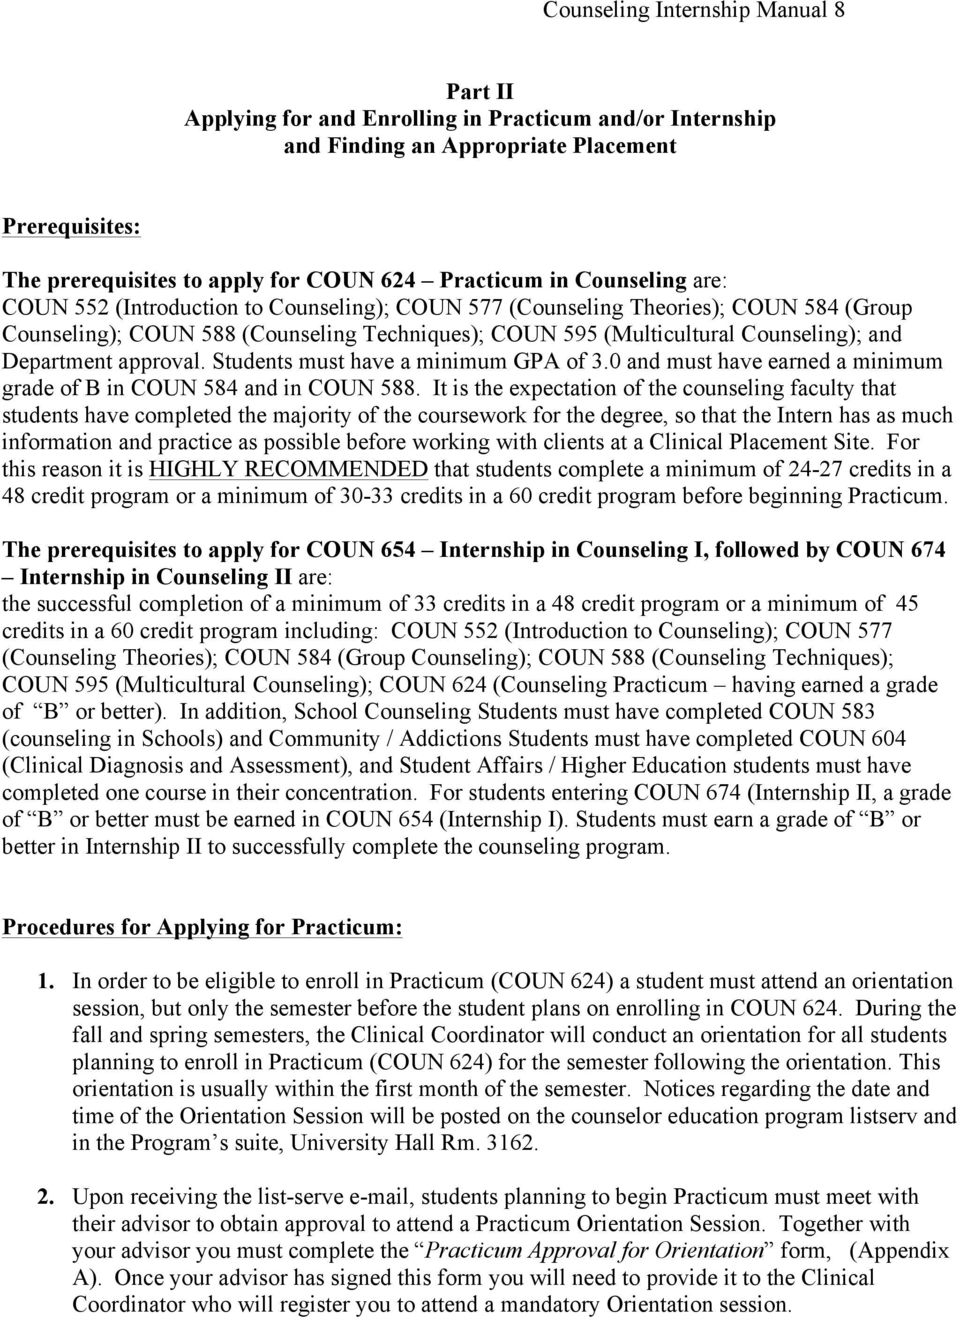 Department approval. Students must have a minimum GPA of 3.0 and must have earned a minimum grade of B in COUN 584 and in COUN 588.